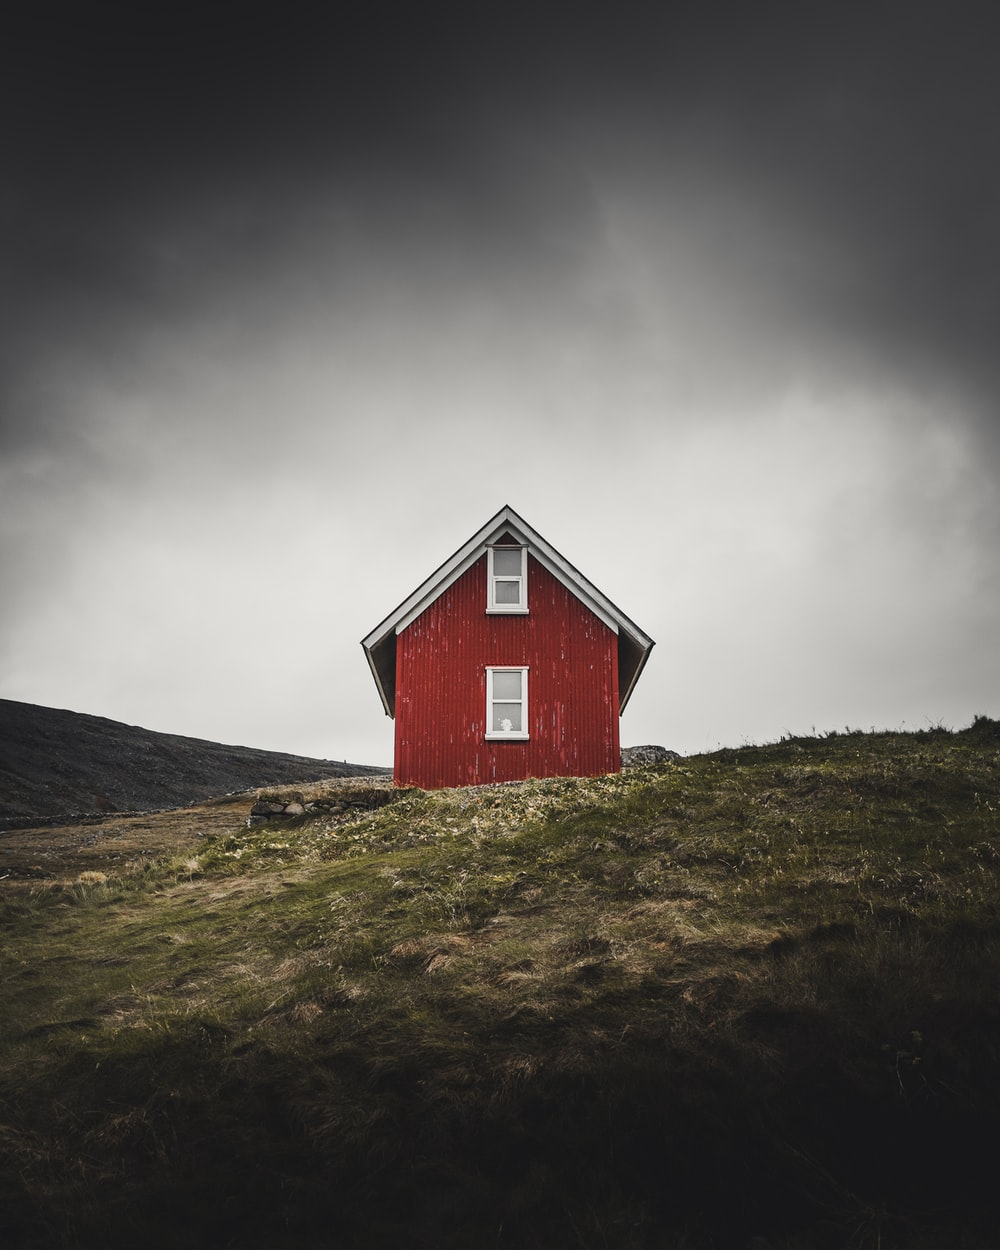 photo of red barn house on top of hill